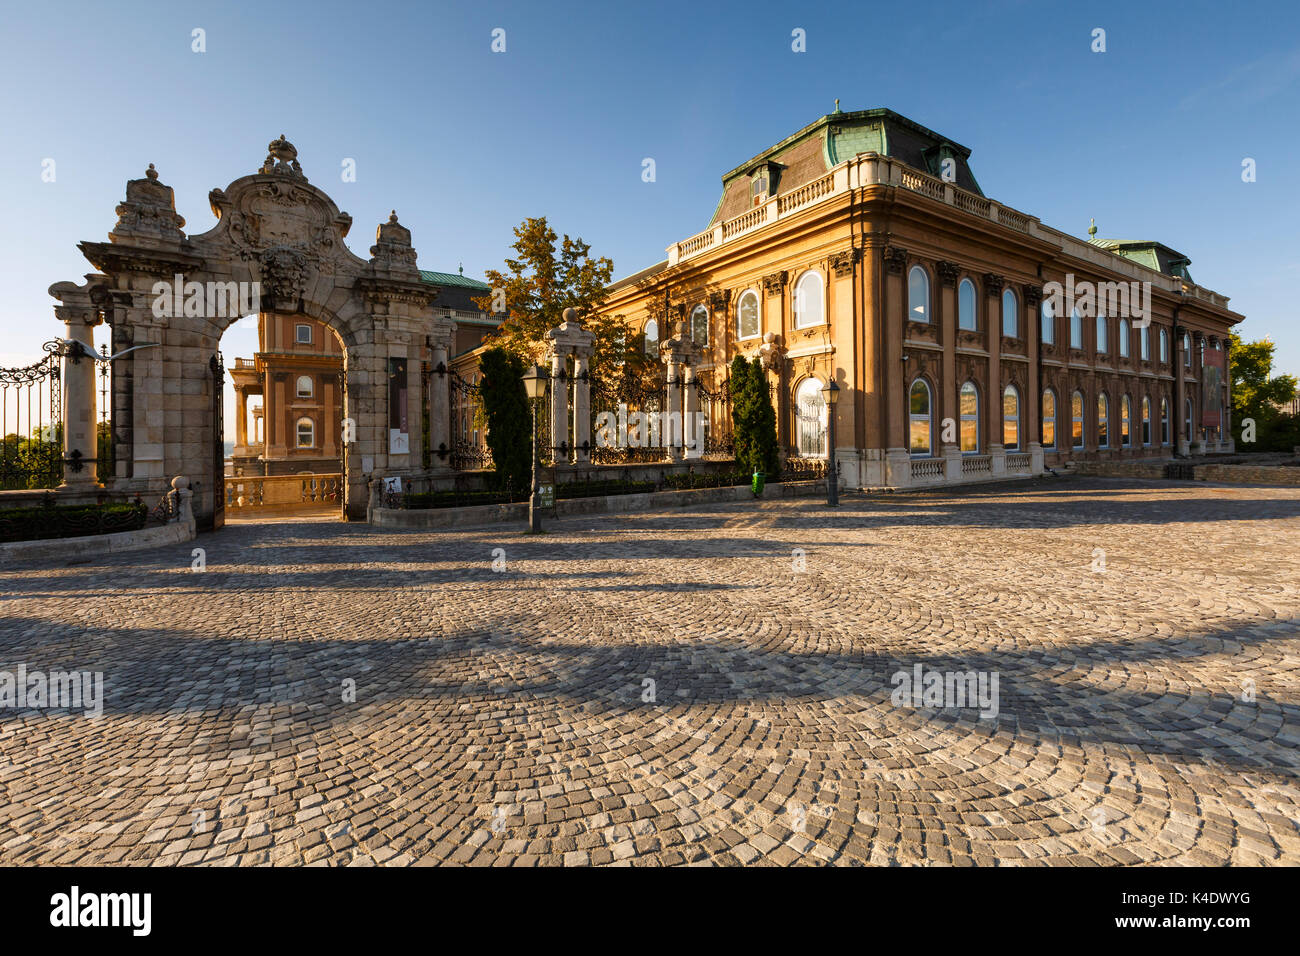 Morning view of Buda castle. - Stock Image